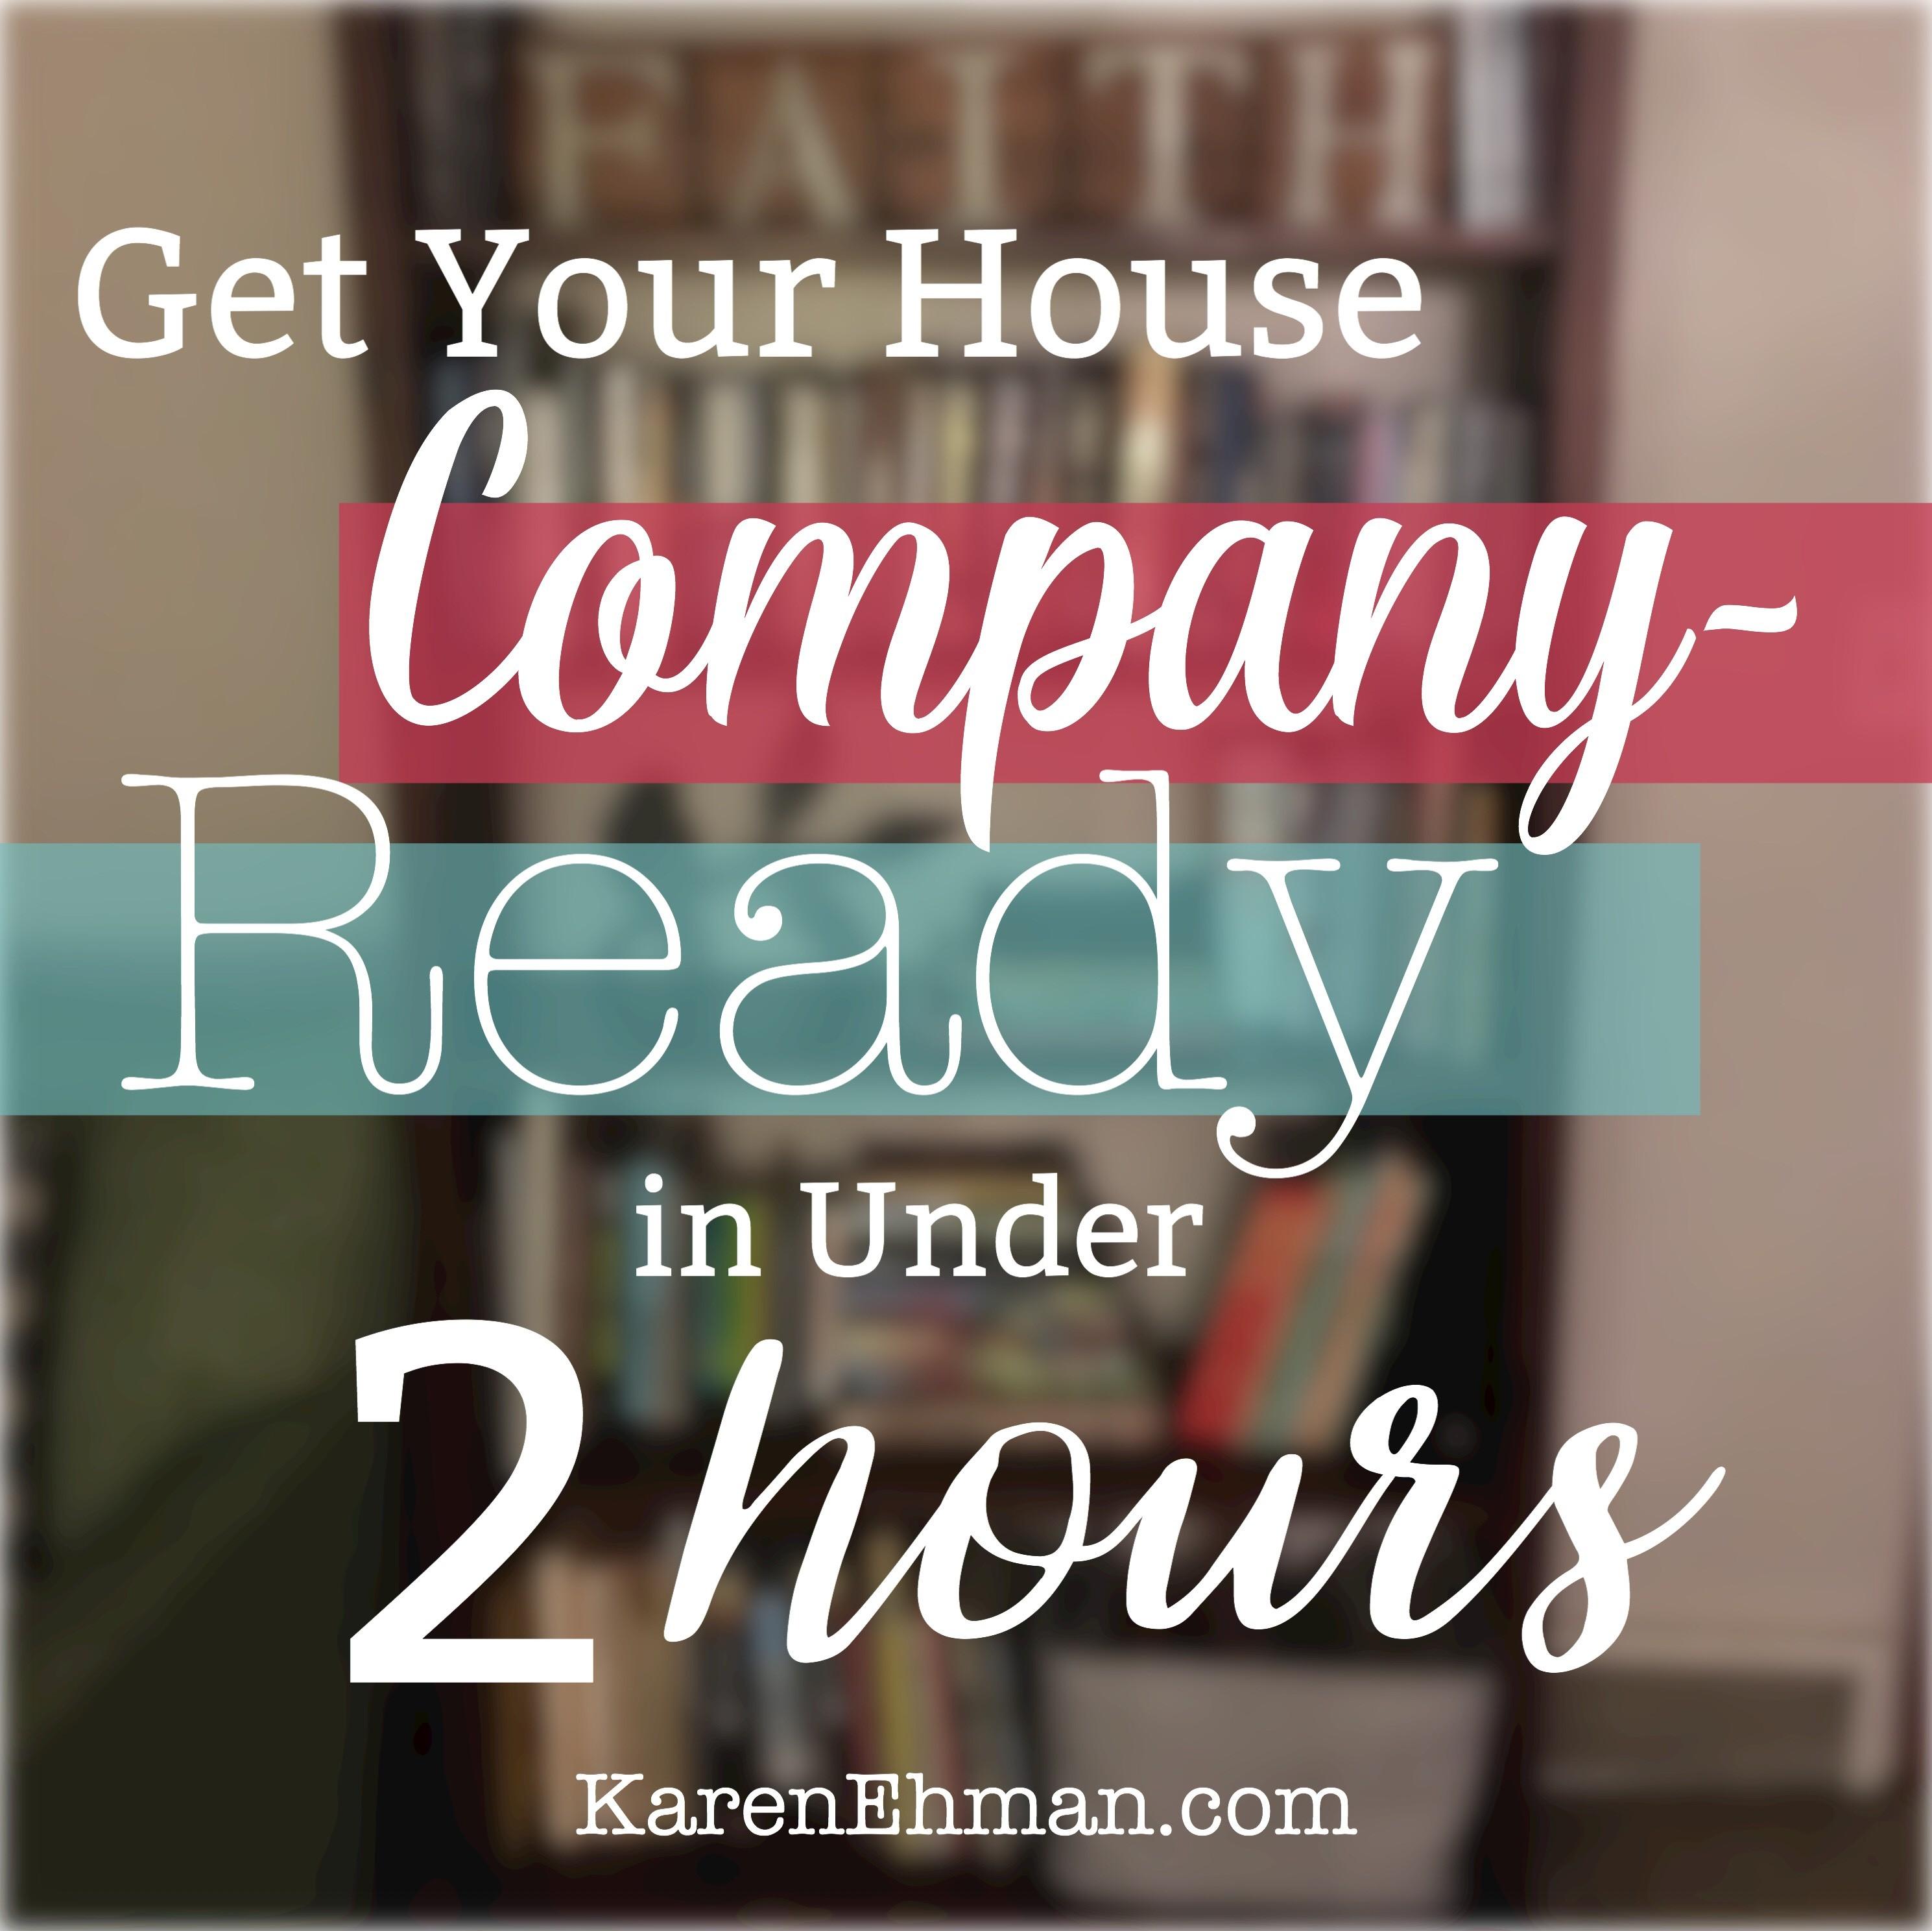 Get Your House Company-Ready in Under 2 Hours with Crystal Paine at KarenEhman.com